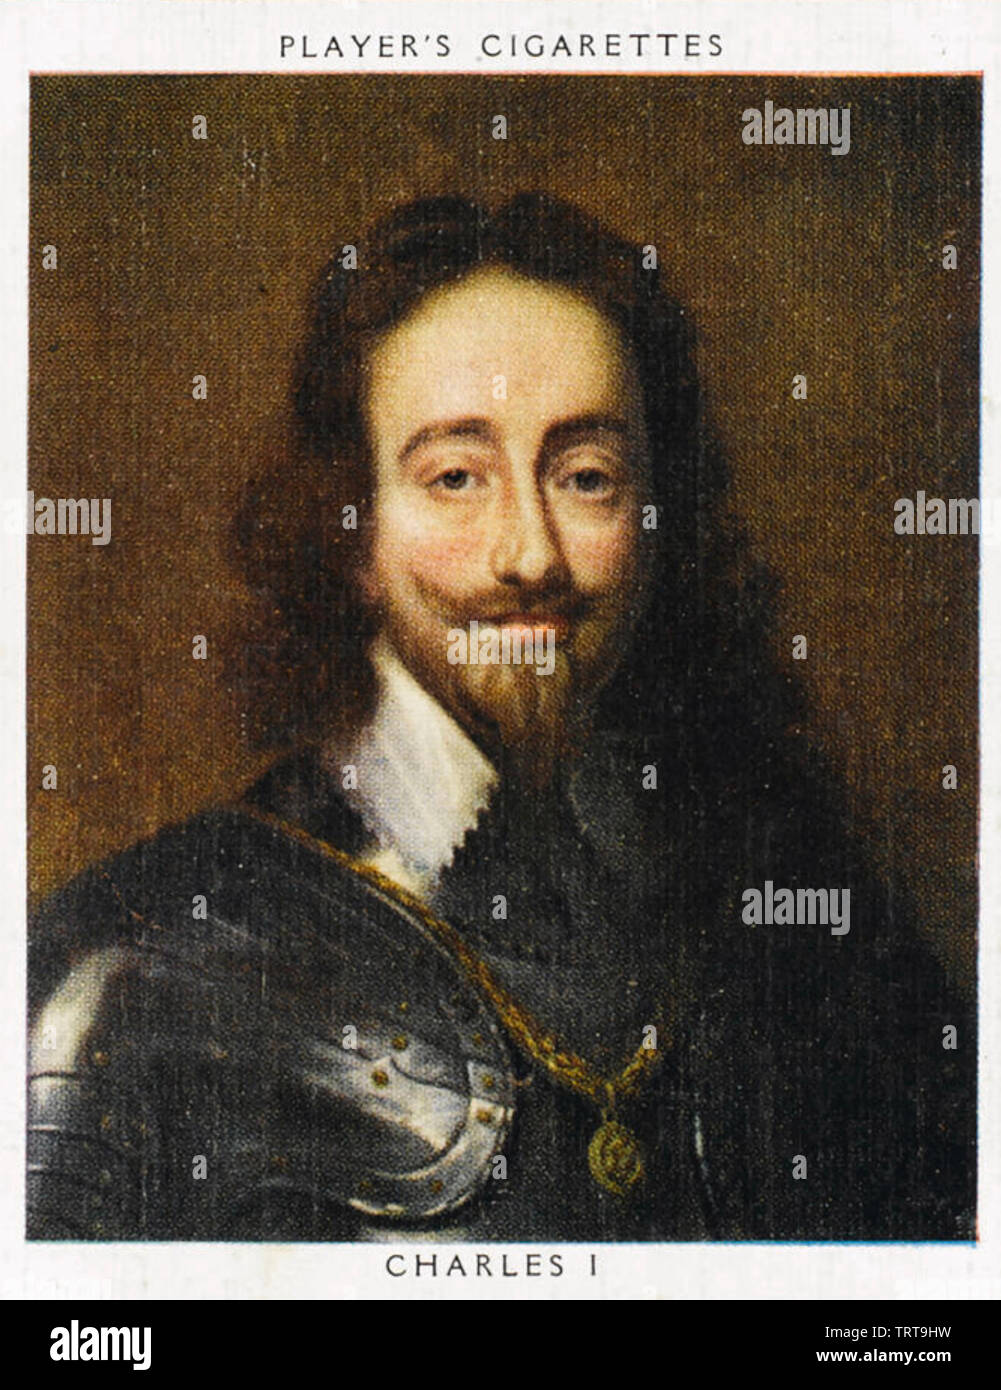 CHARLES I OF ENGLAND (1600-1649) on a 1930s cigarette card - Stock Image